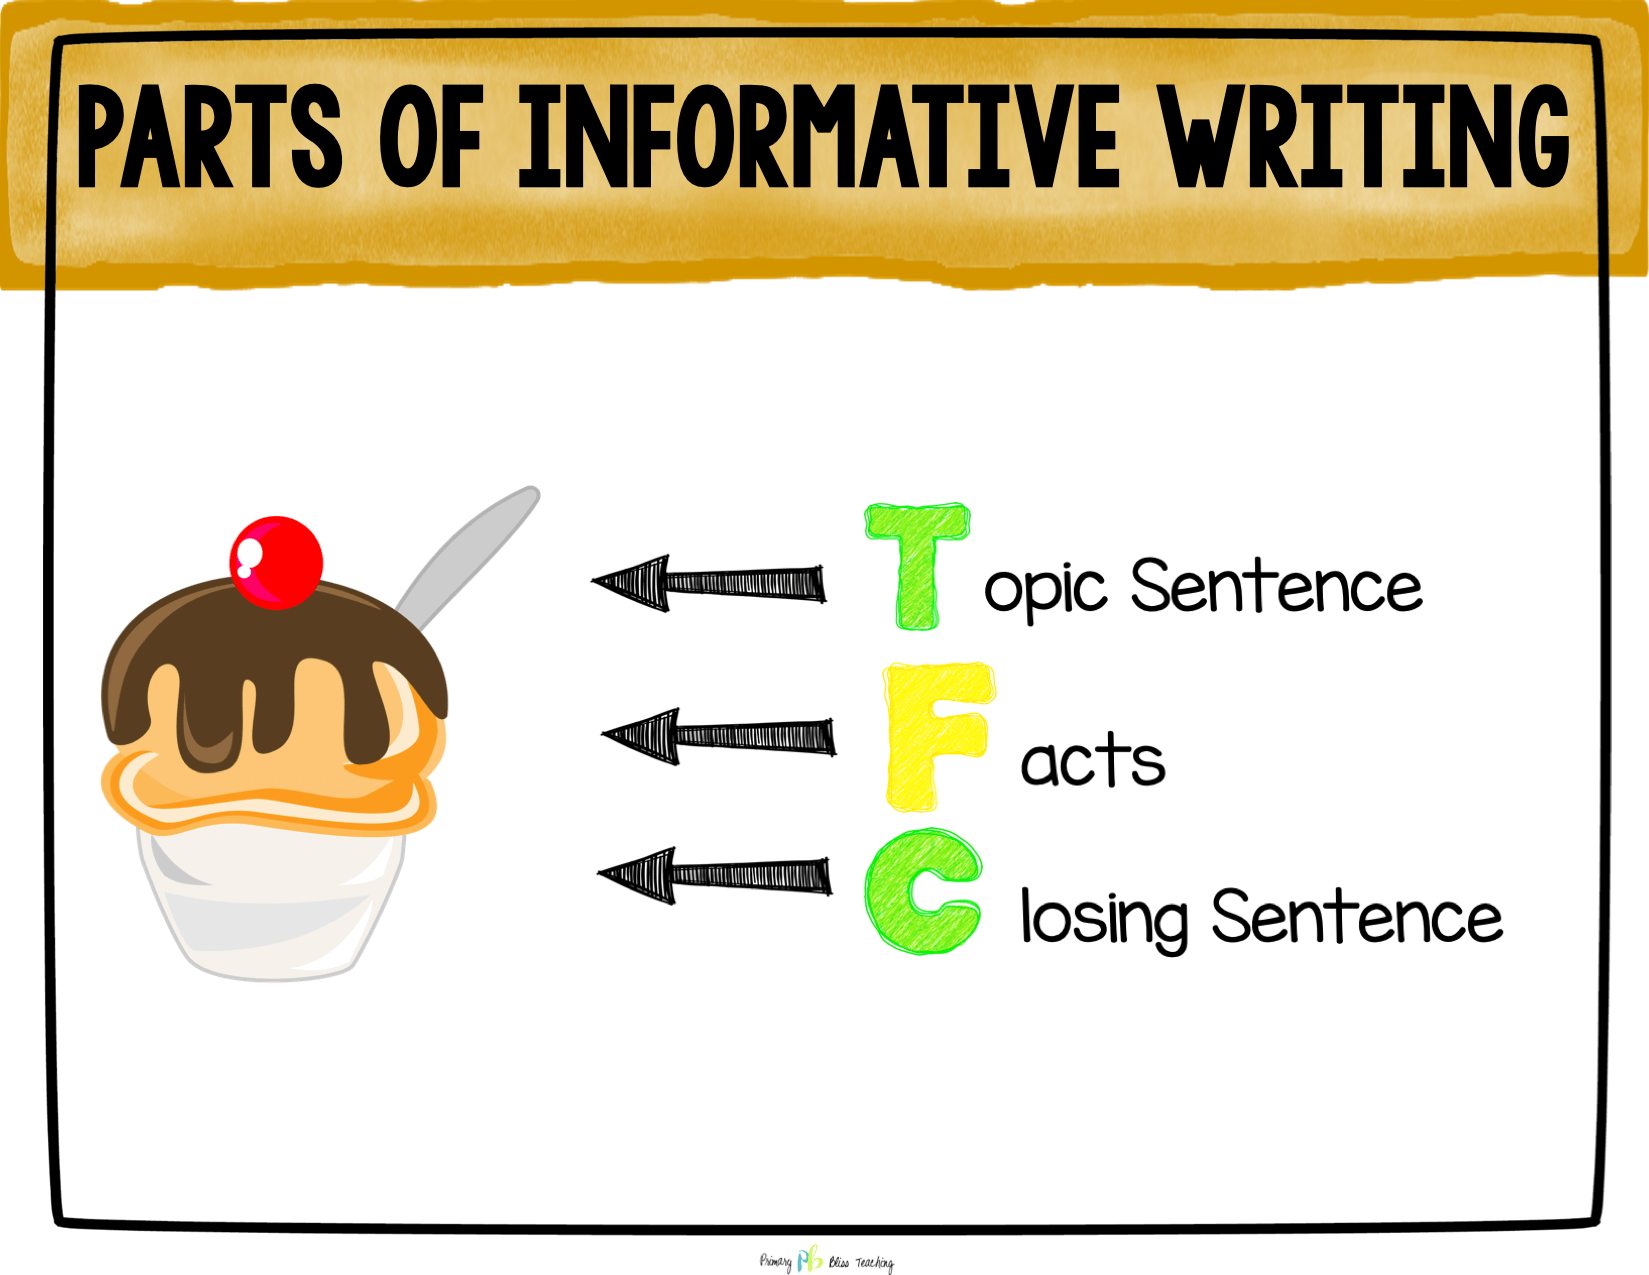 Parts of Informative Writing POSTER